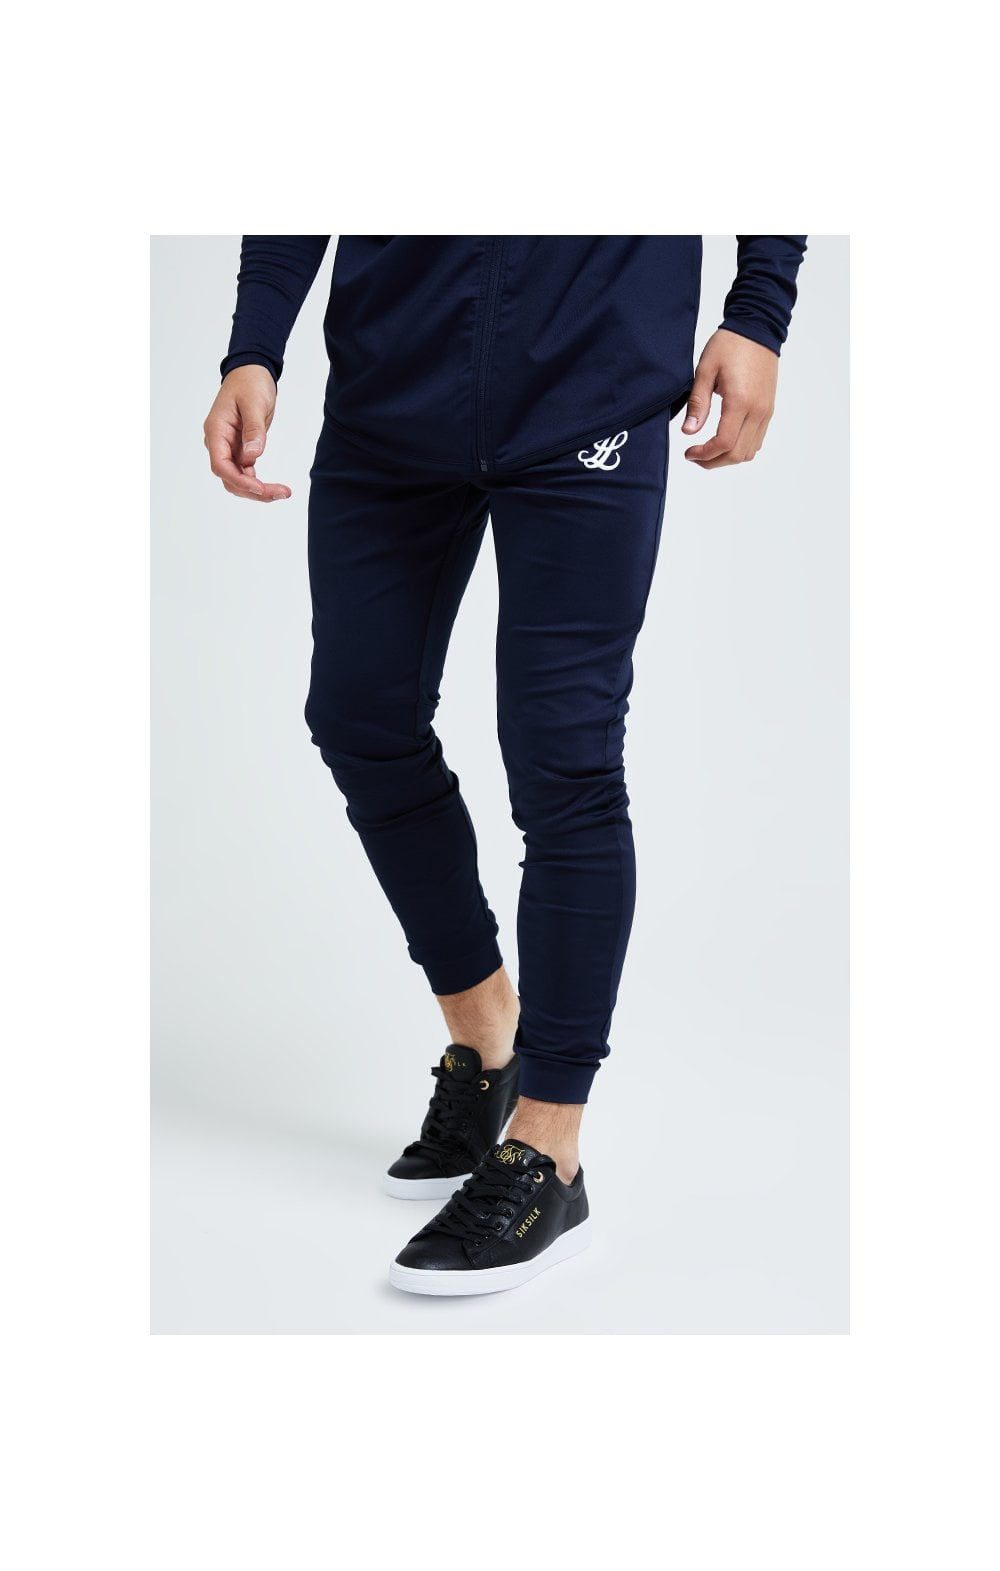 Illusive London Core Fitted Joggers - Navy